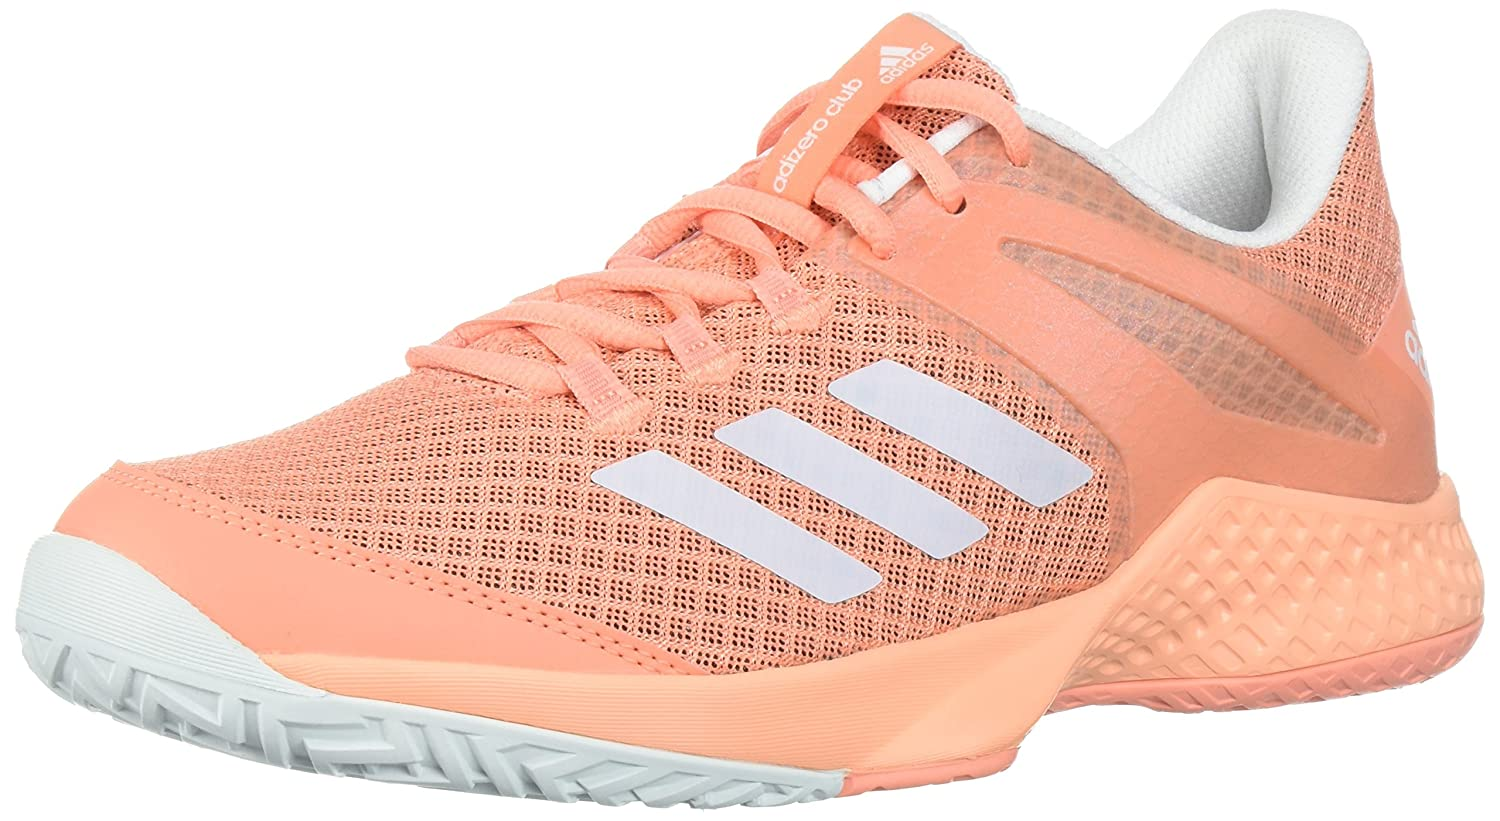 adidas Women's Adizero Club w Tennis Shoe B072BWZKZ1 7 B(M) US|Chalk Coral/White/Blue Tint